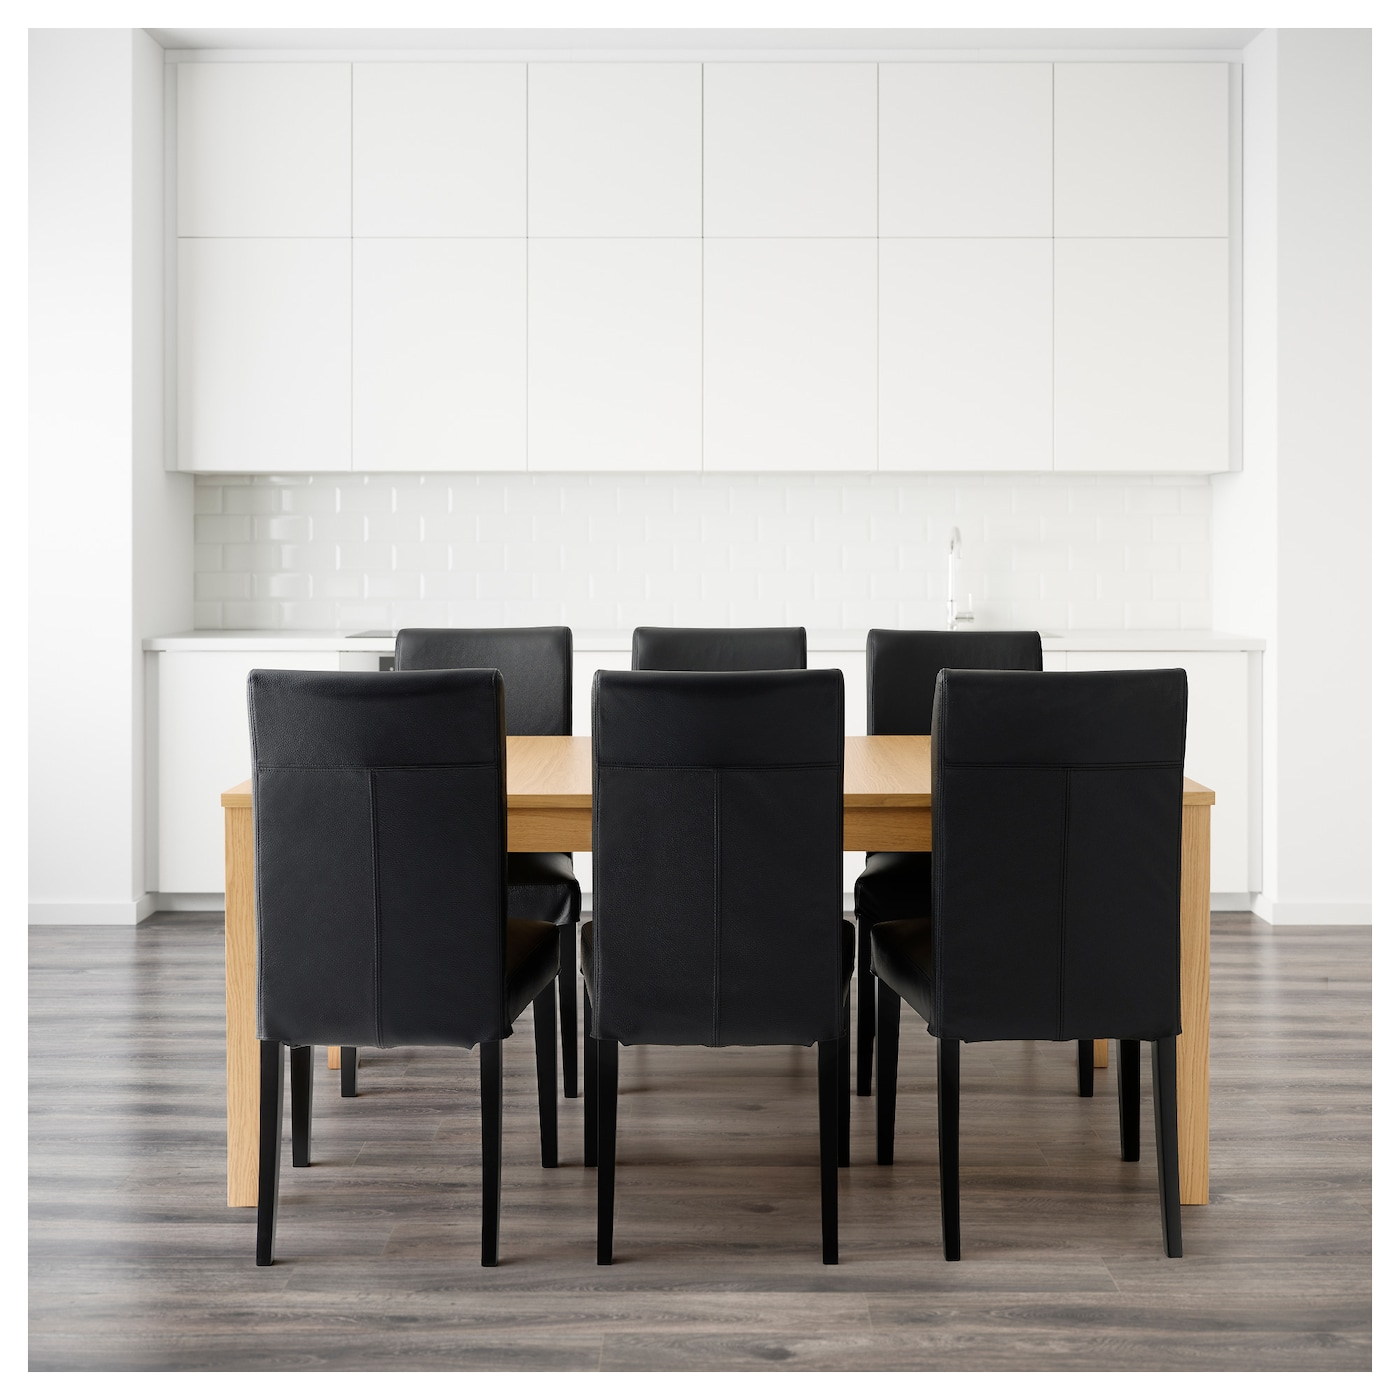 /BJURSTA Table And 6 Chairs Oak Veneer/glose Black 175 Cm IKEA. Full resolution‎  portraiture, nominally Width 2000 Height 2000 pixels, portraiture with #876844.